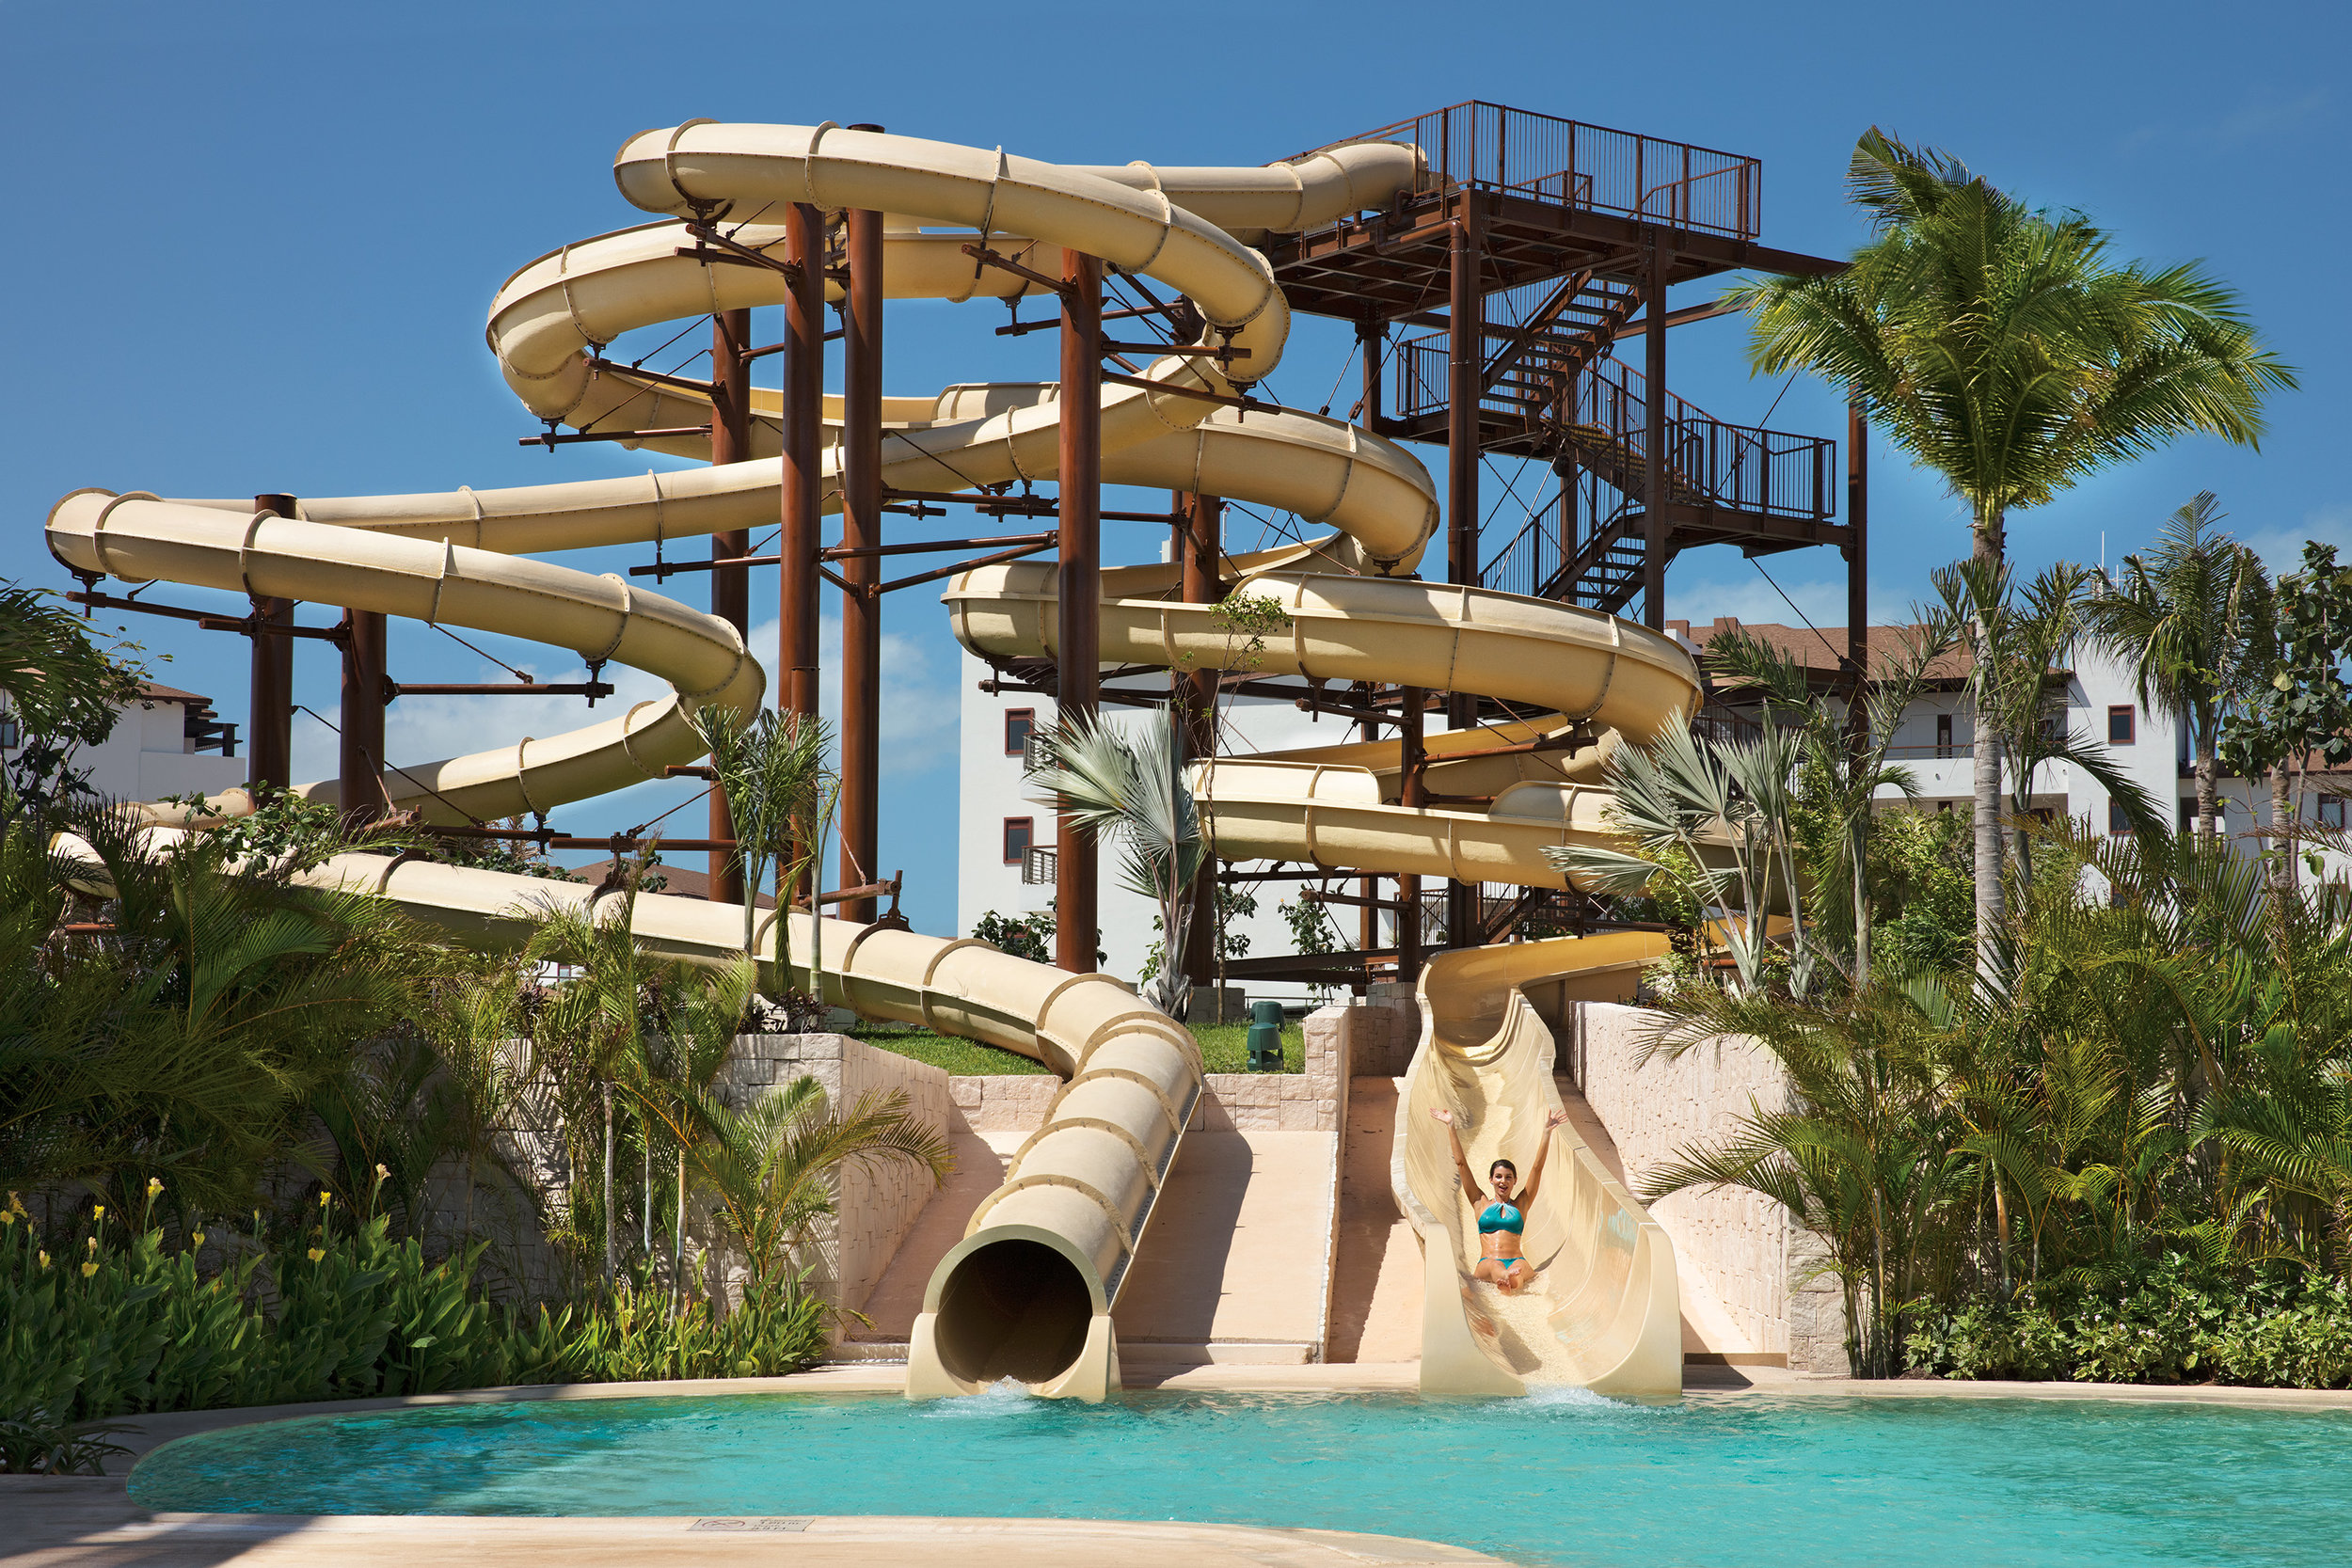 Dreams Water Slide.jpg